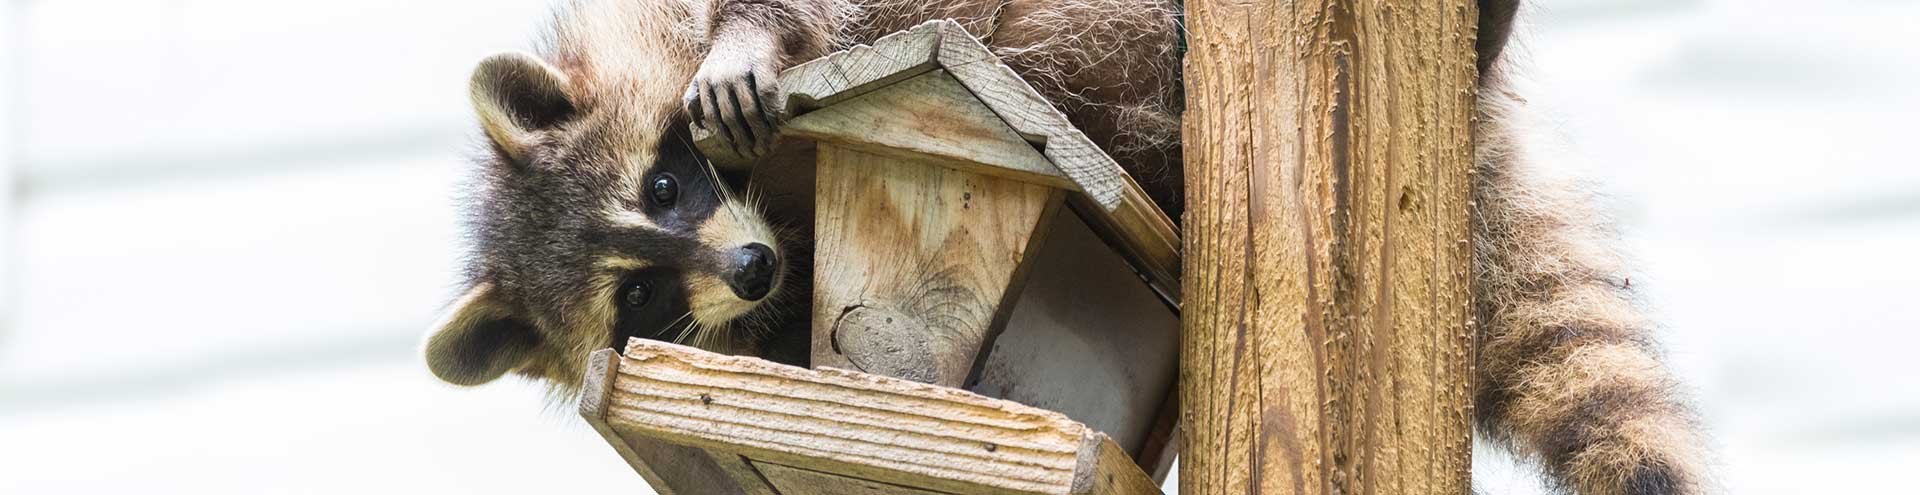 A raccoon trying to break into a birdhouse mounted on a pole.